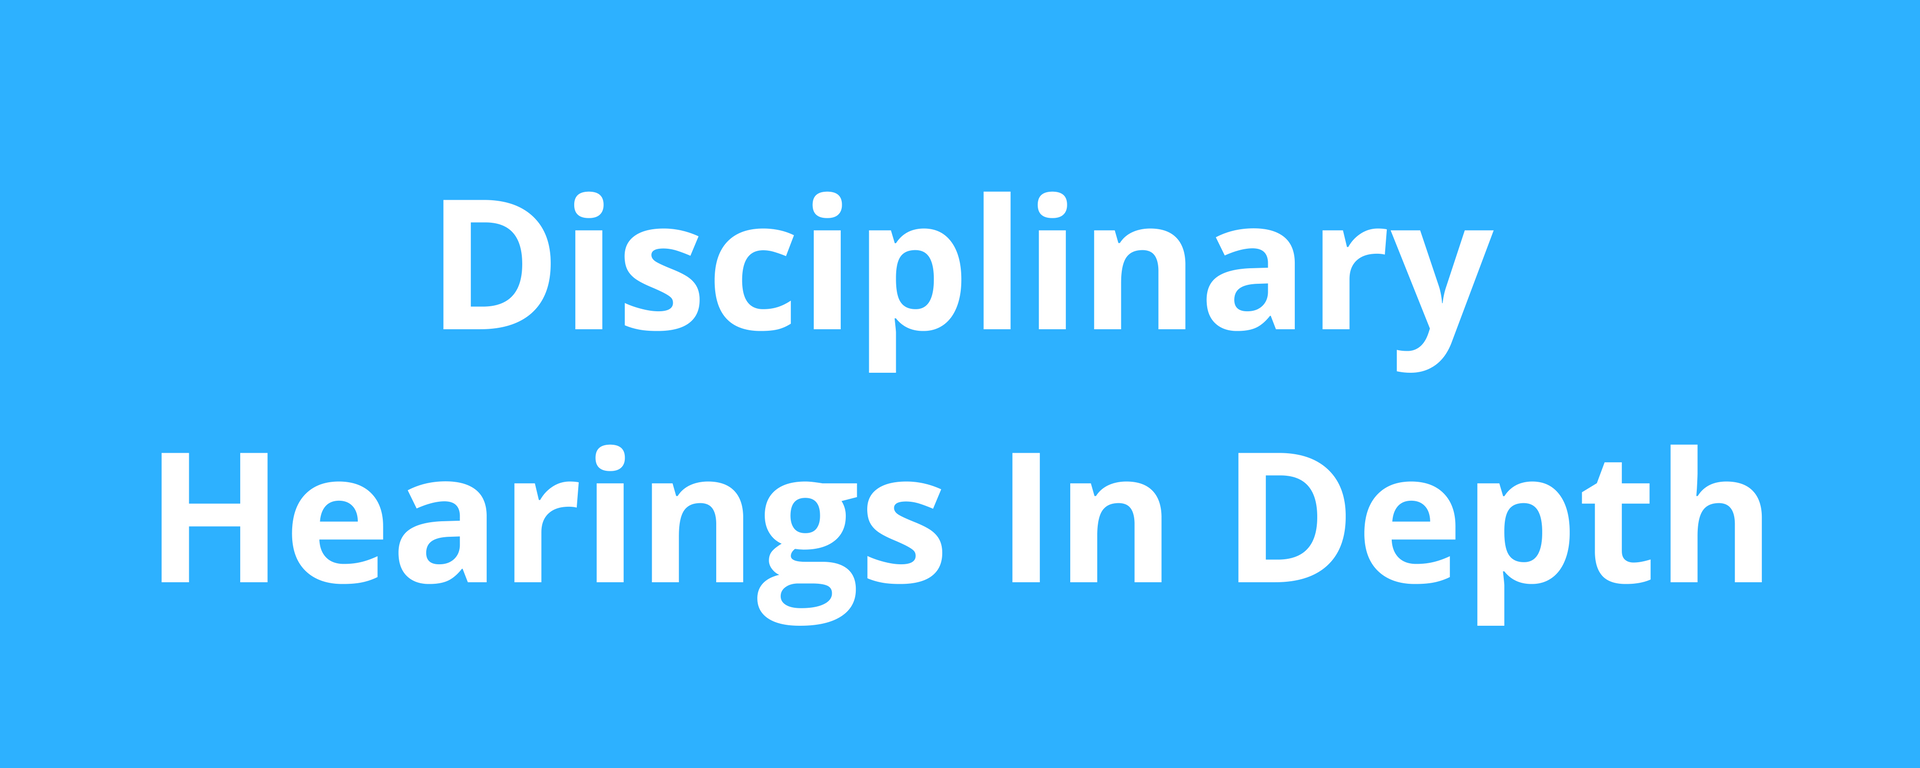 Disciplinary Hearings In Depth